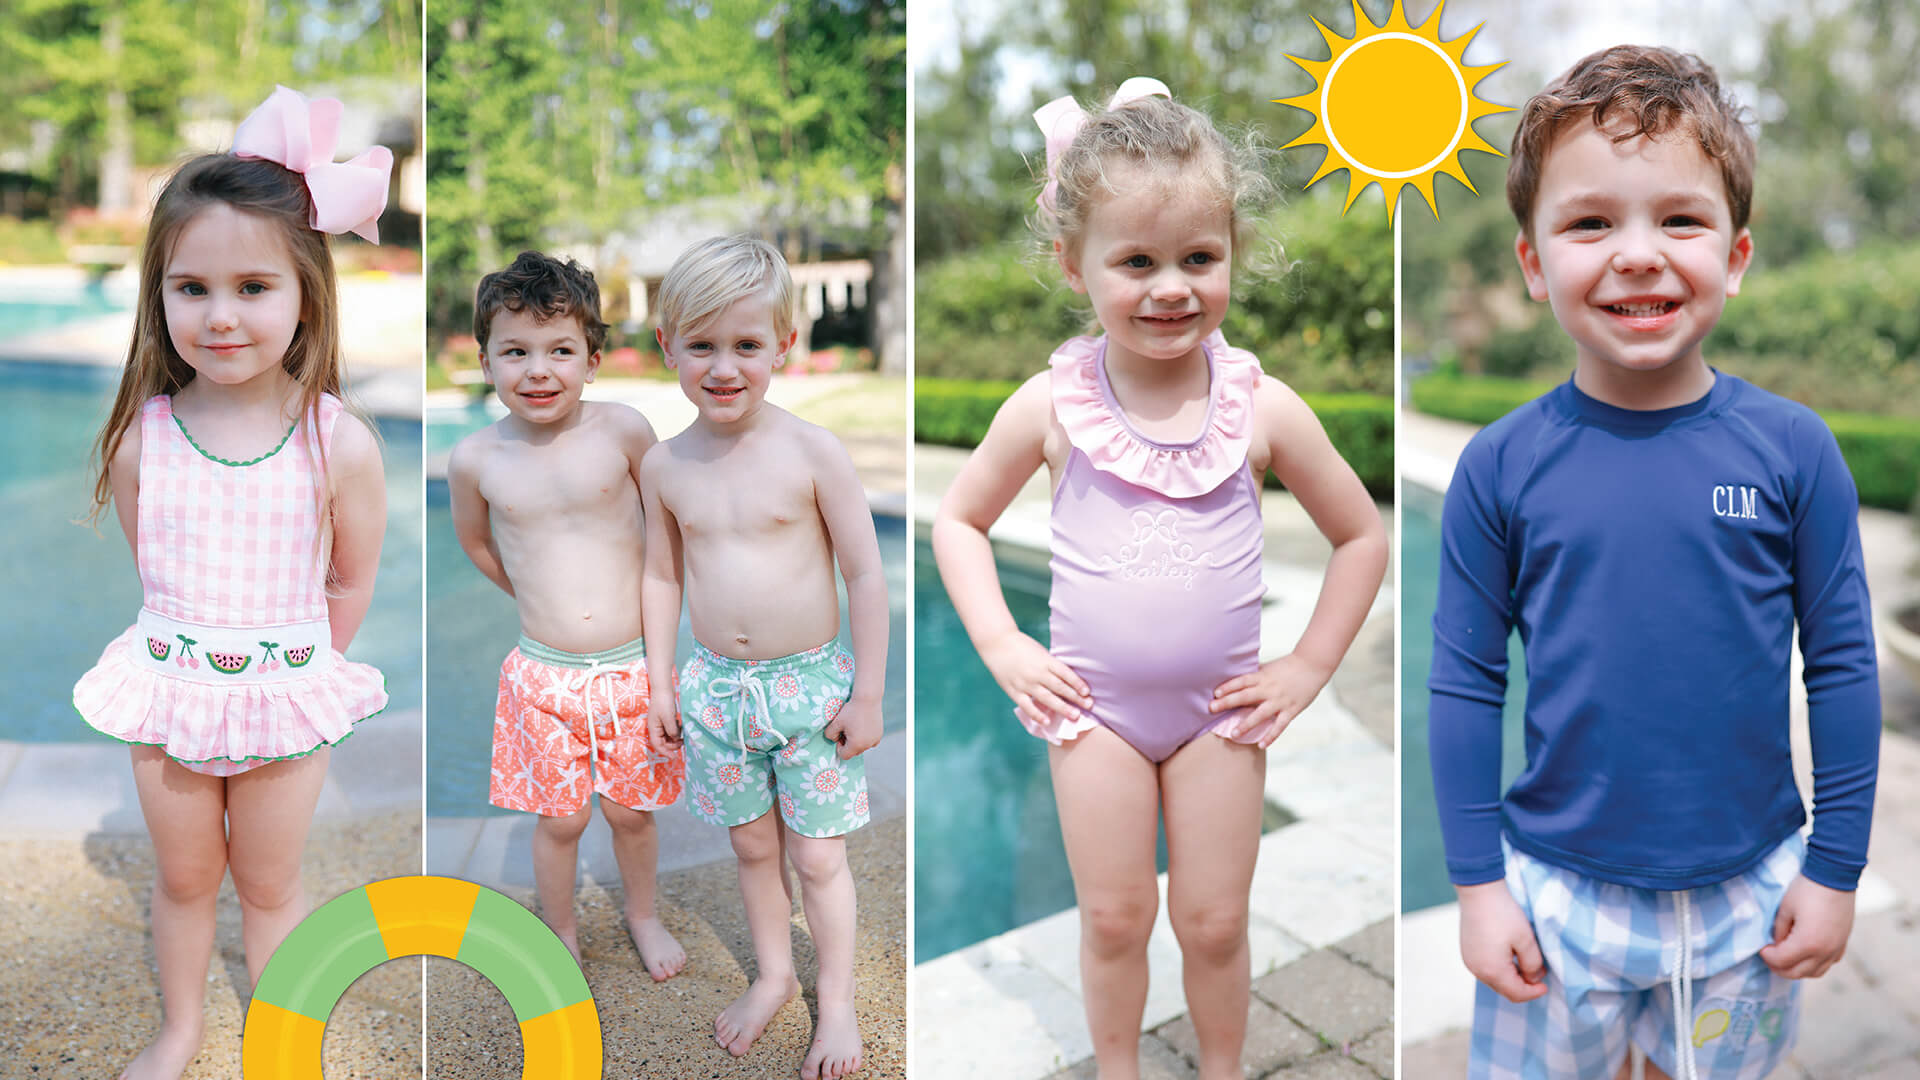 Children's Swimsuits at Cecil and Lou